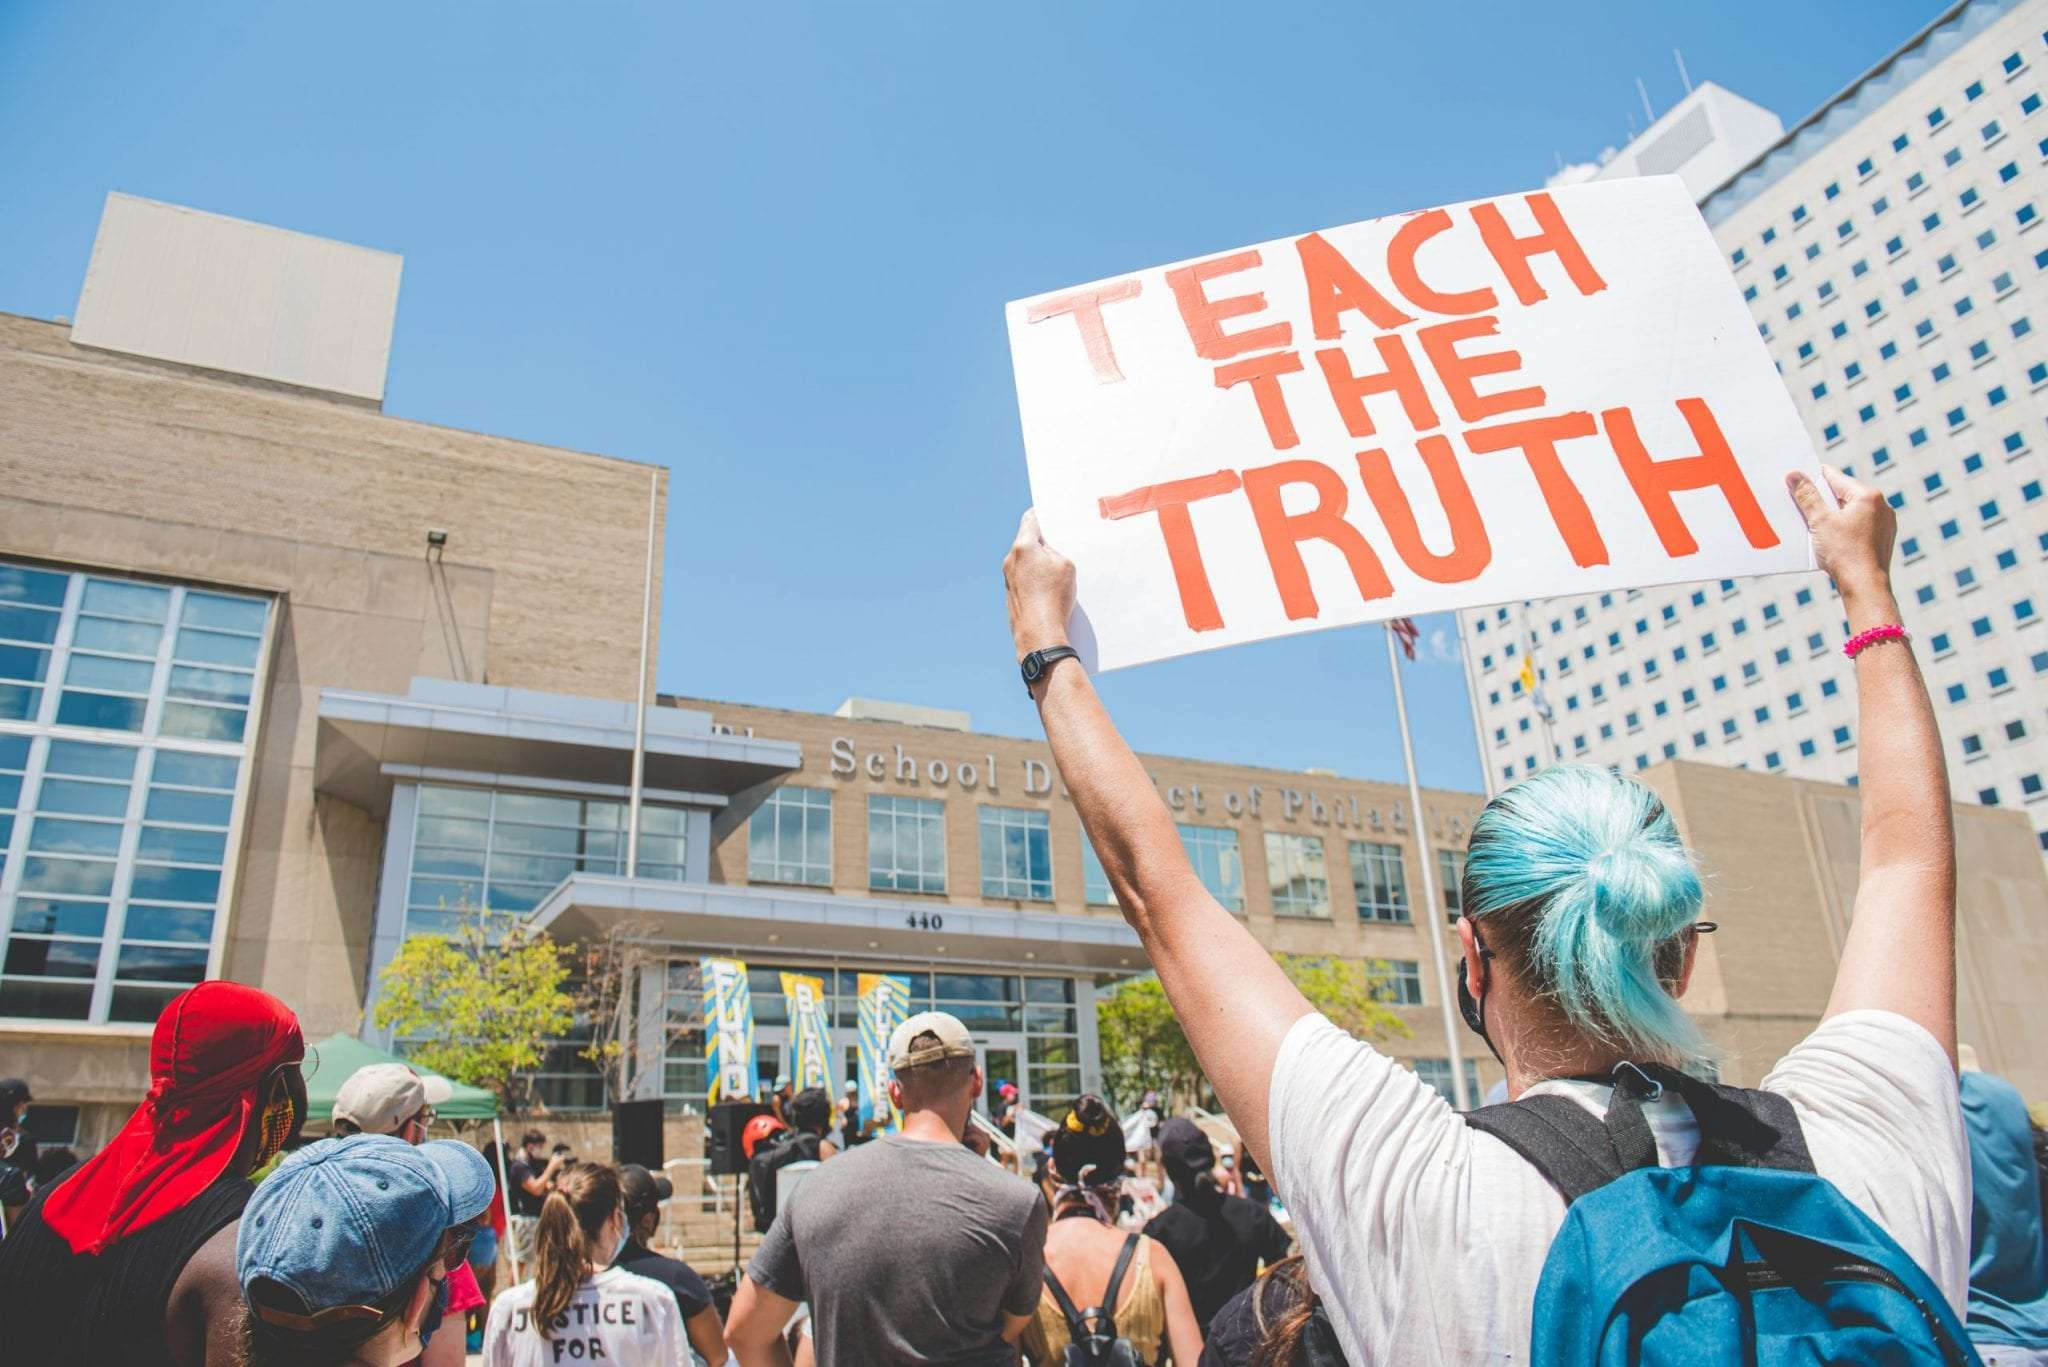 Defund the police in schools fund education protest